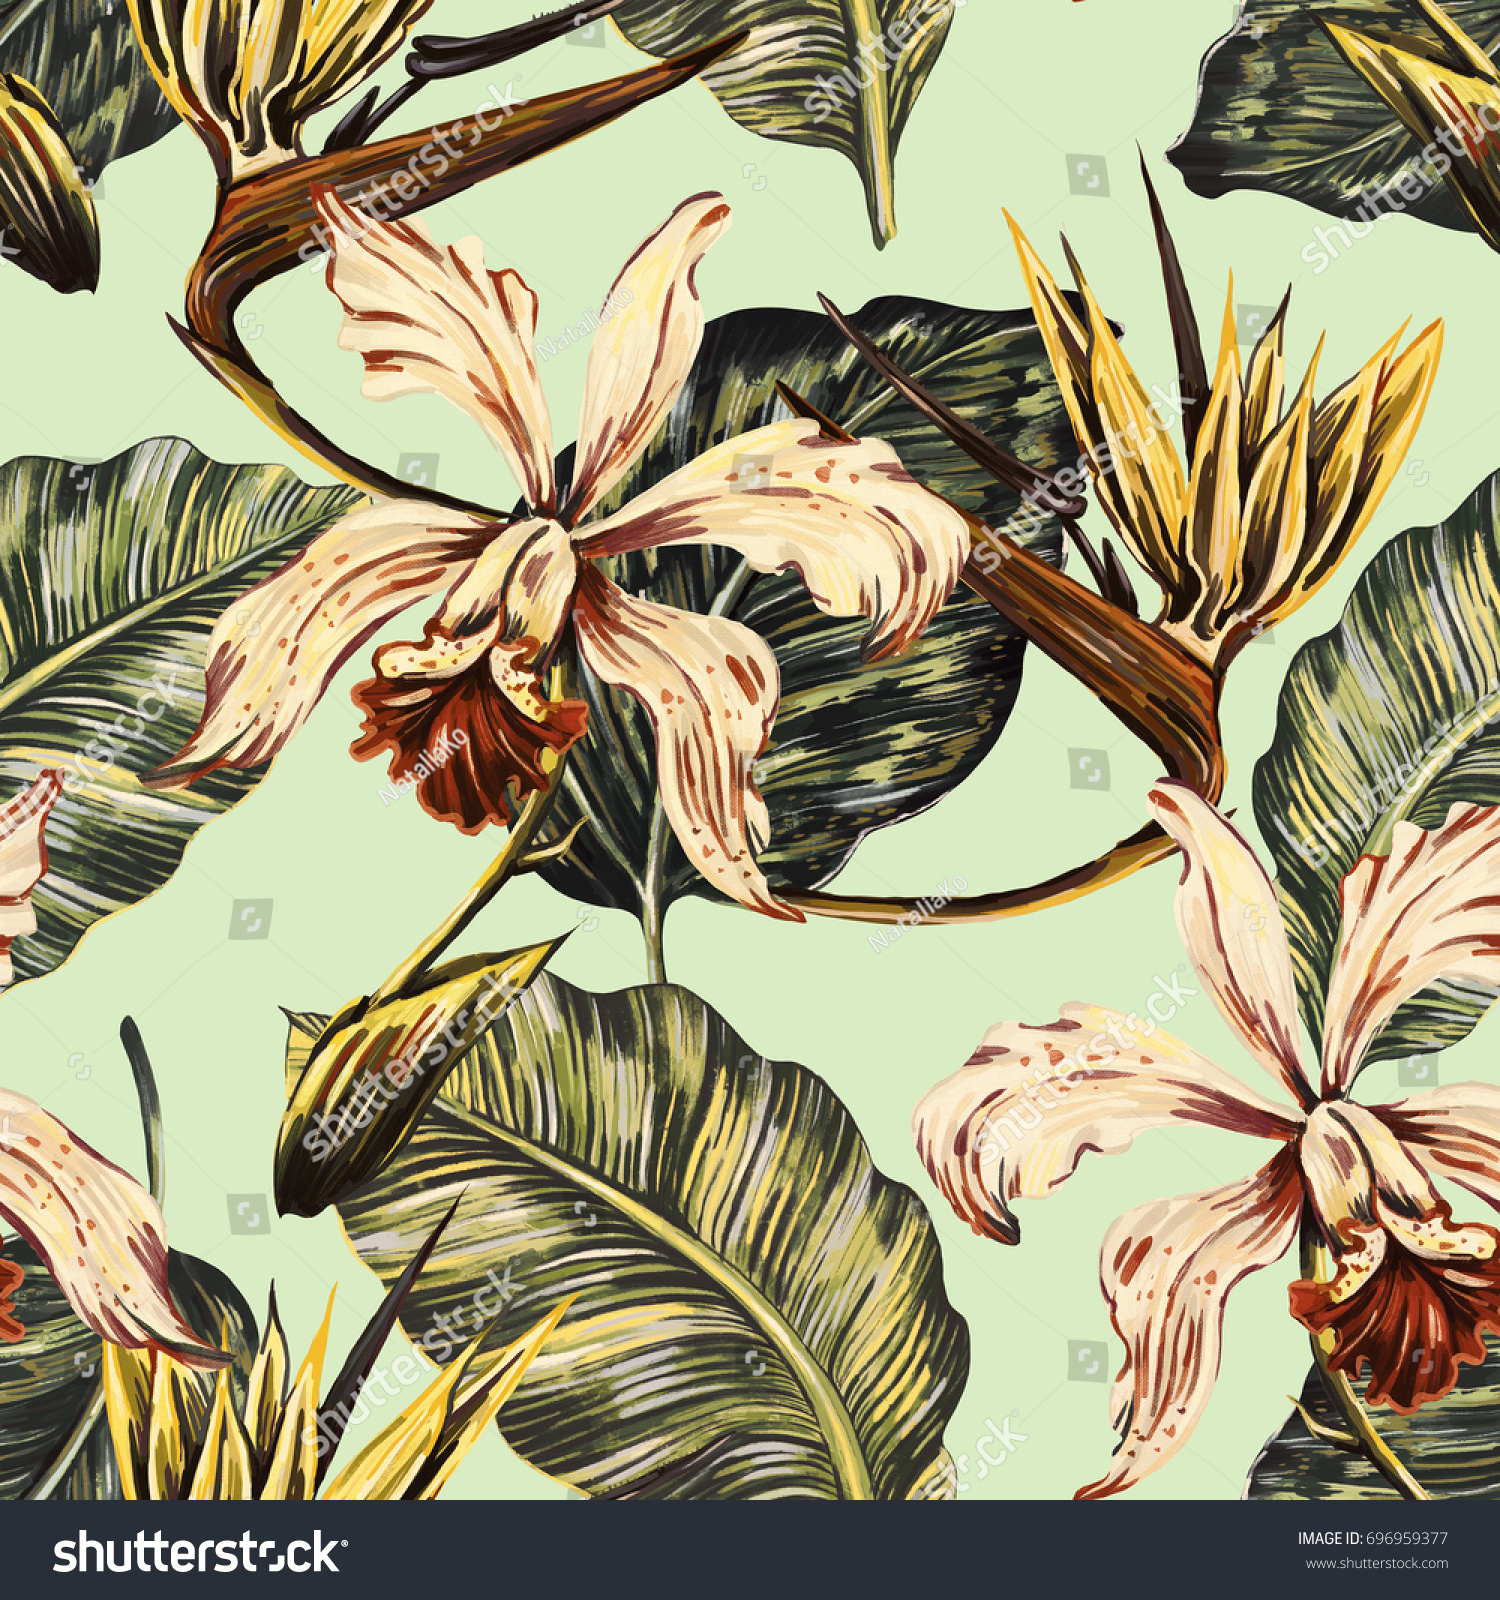 Vintage Style Tropical Bird And Flowers Background: Vintage Seamless Tropical Pattern Background Exotic Stock